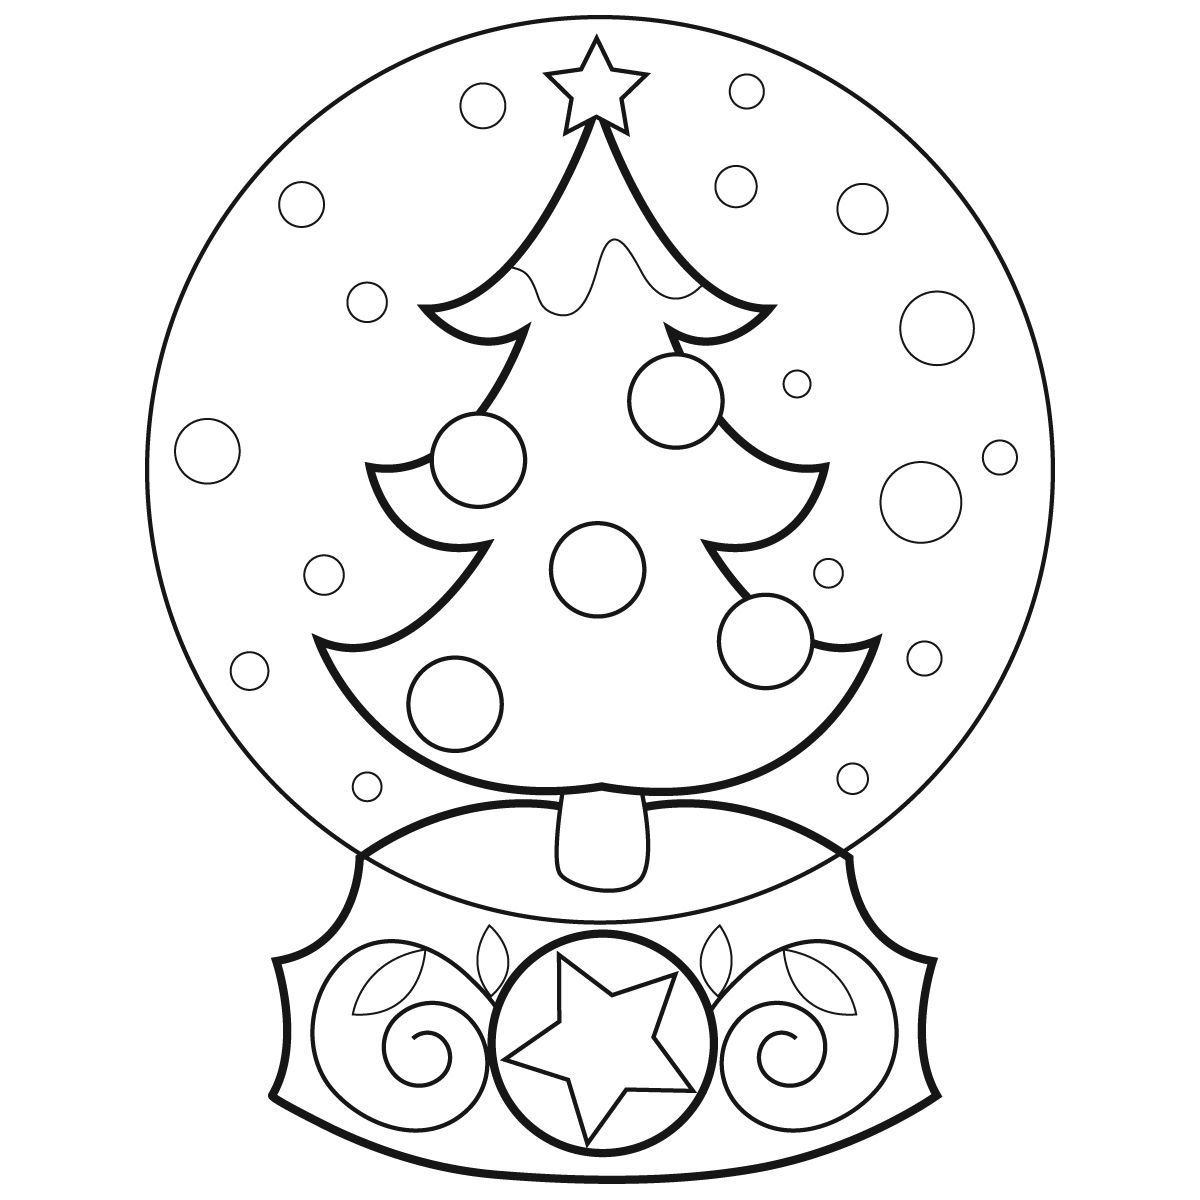 Globe Coloring Page - Snow Globe Coloring Page Kids Coloring